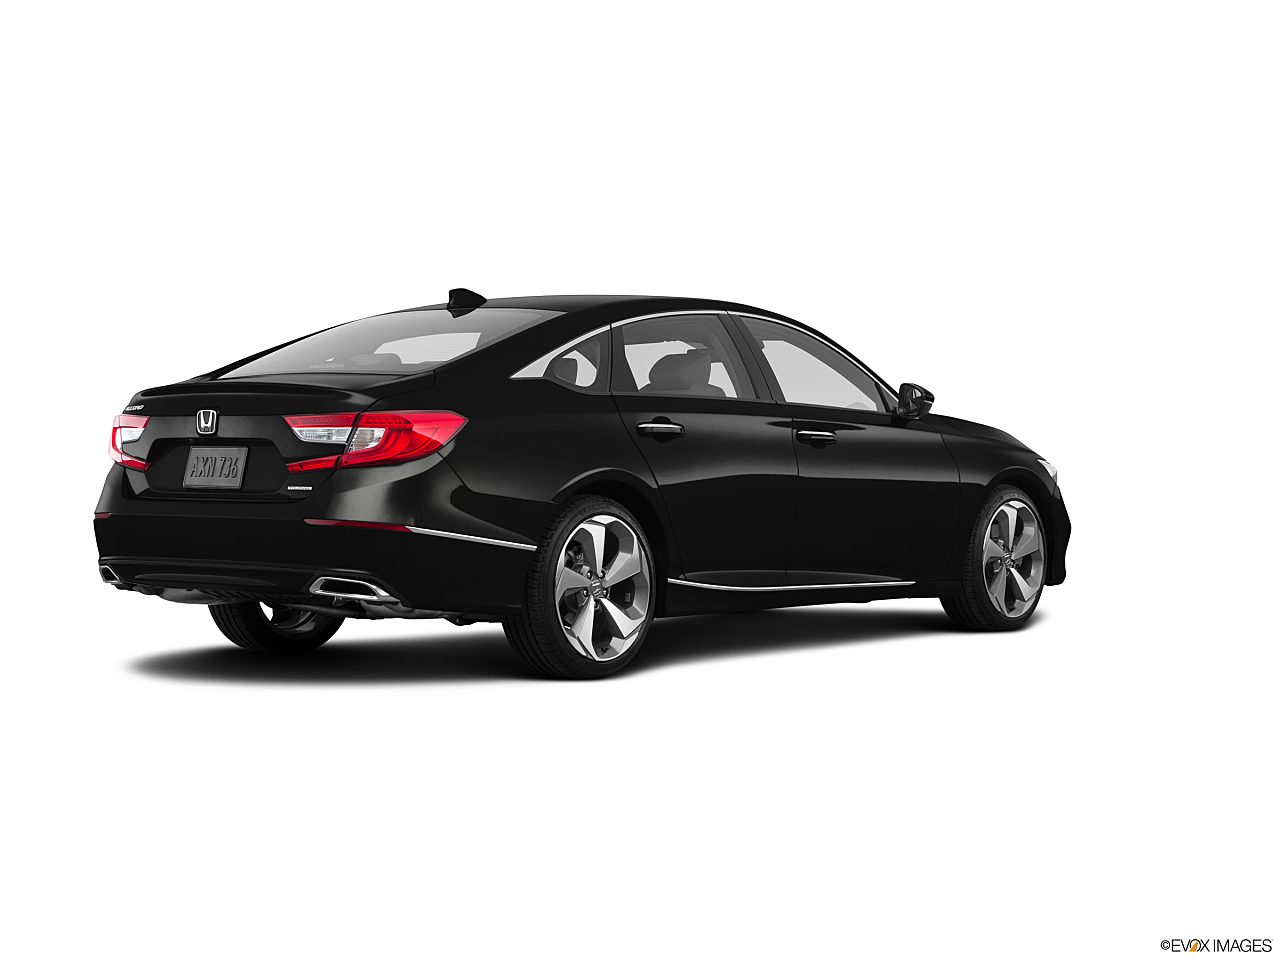 2018 Honda Accord at Piazza Honda of Philadelphia of Philadelphia, PA. The dealership has not provided a description for the image.